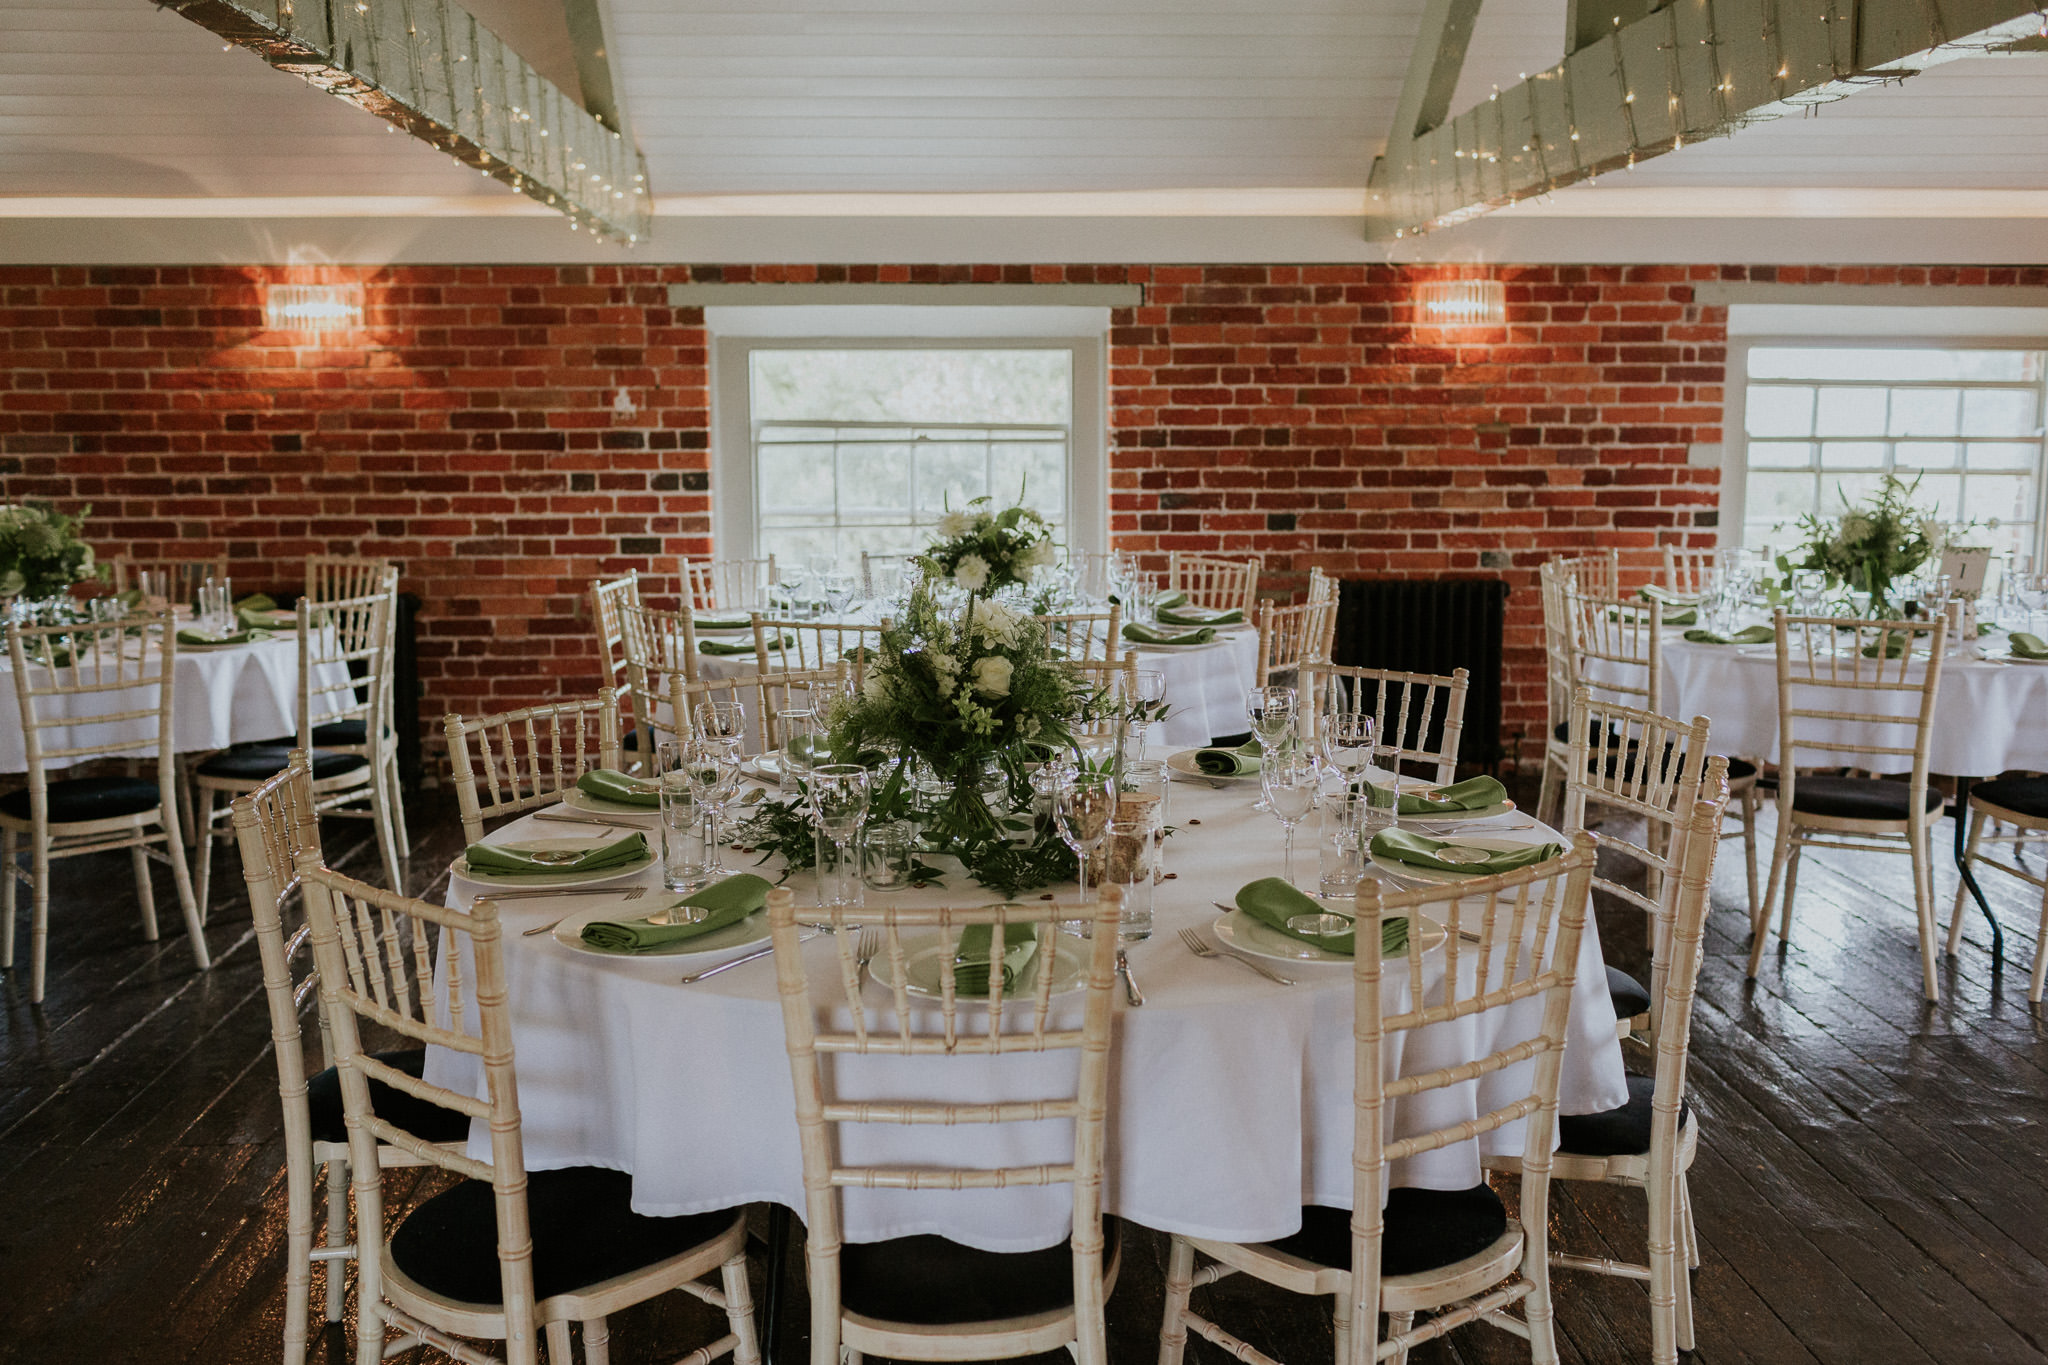 Dorset wedding venue Sopley Mill